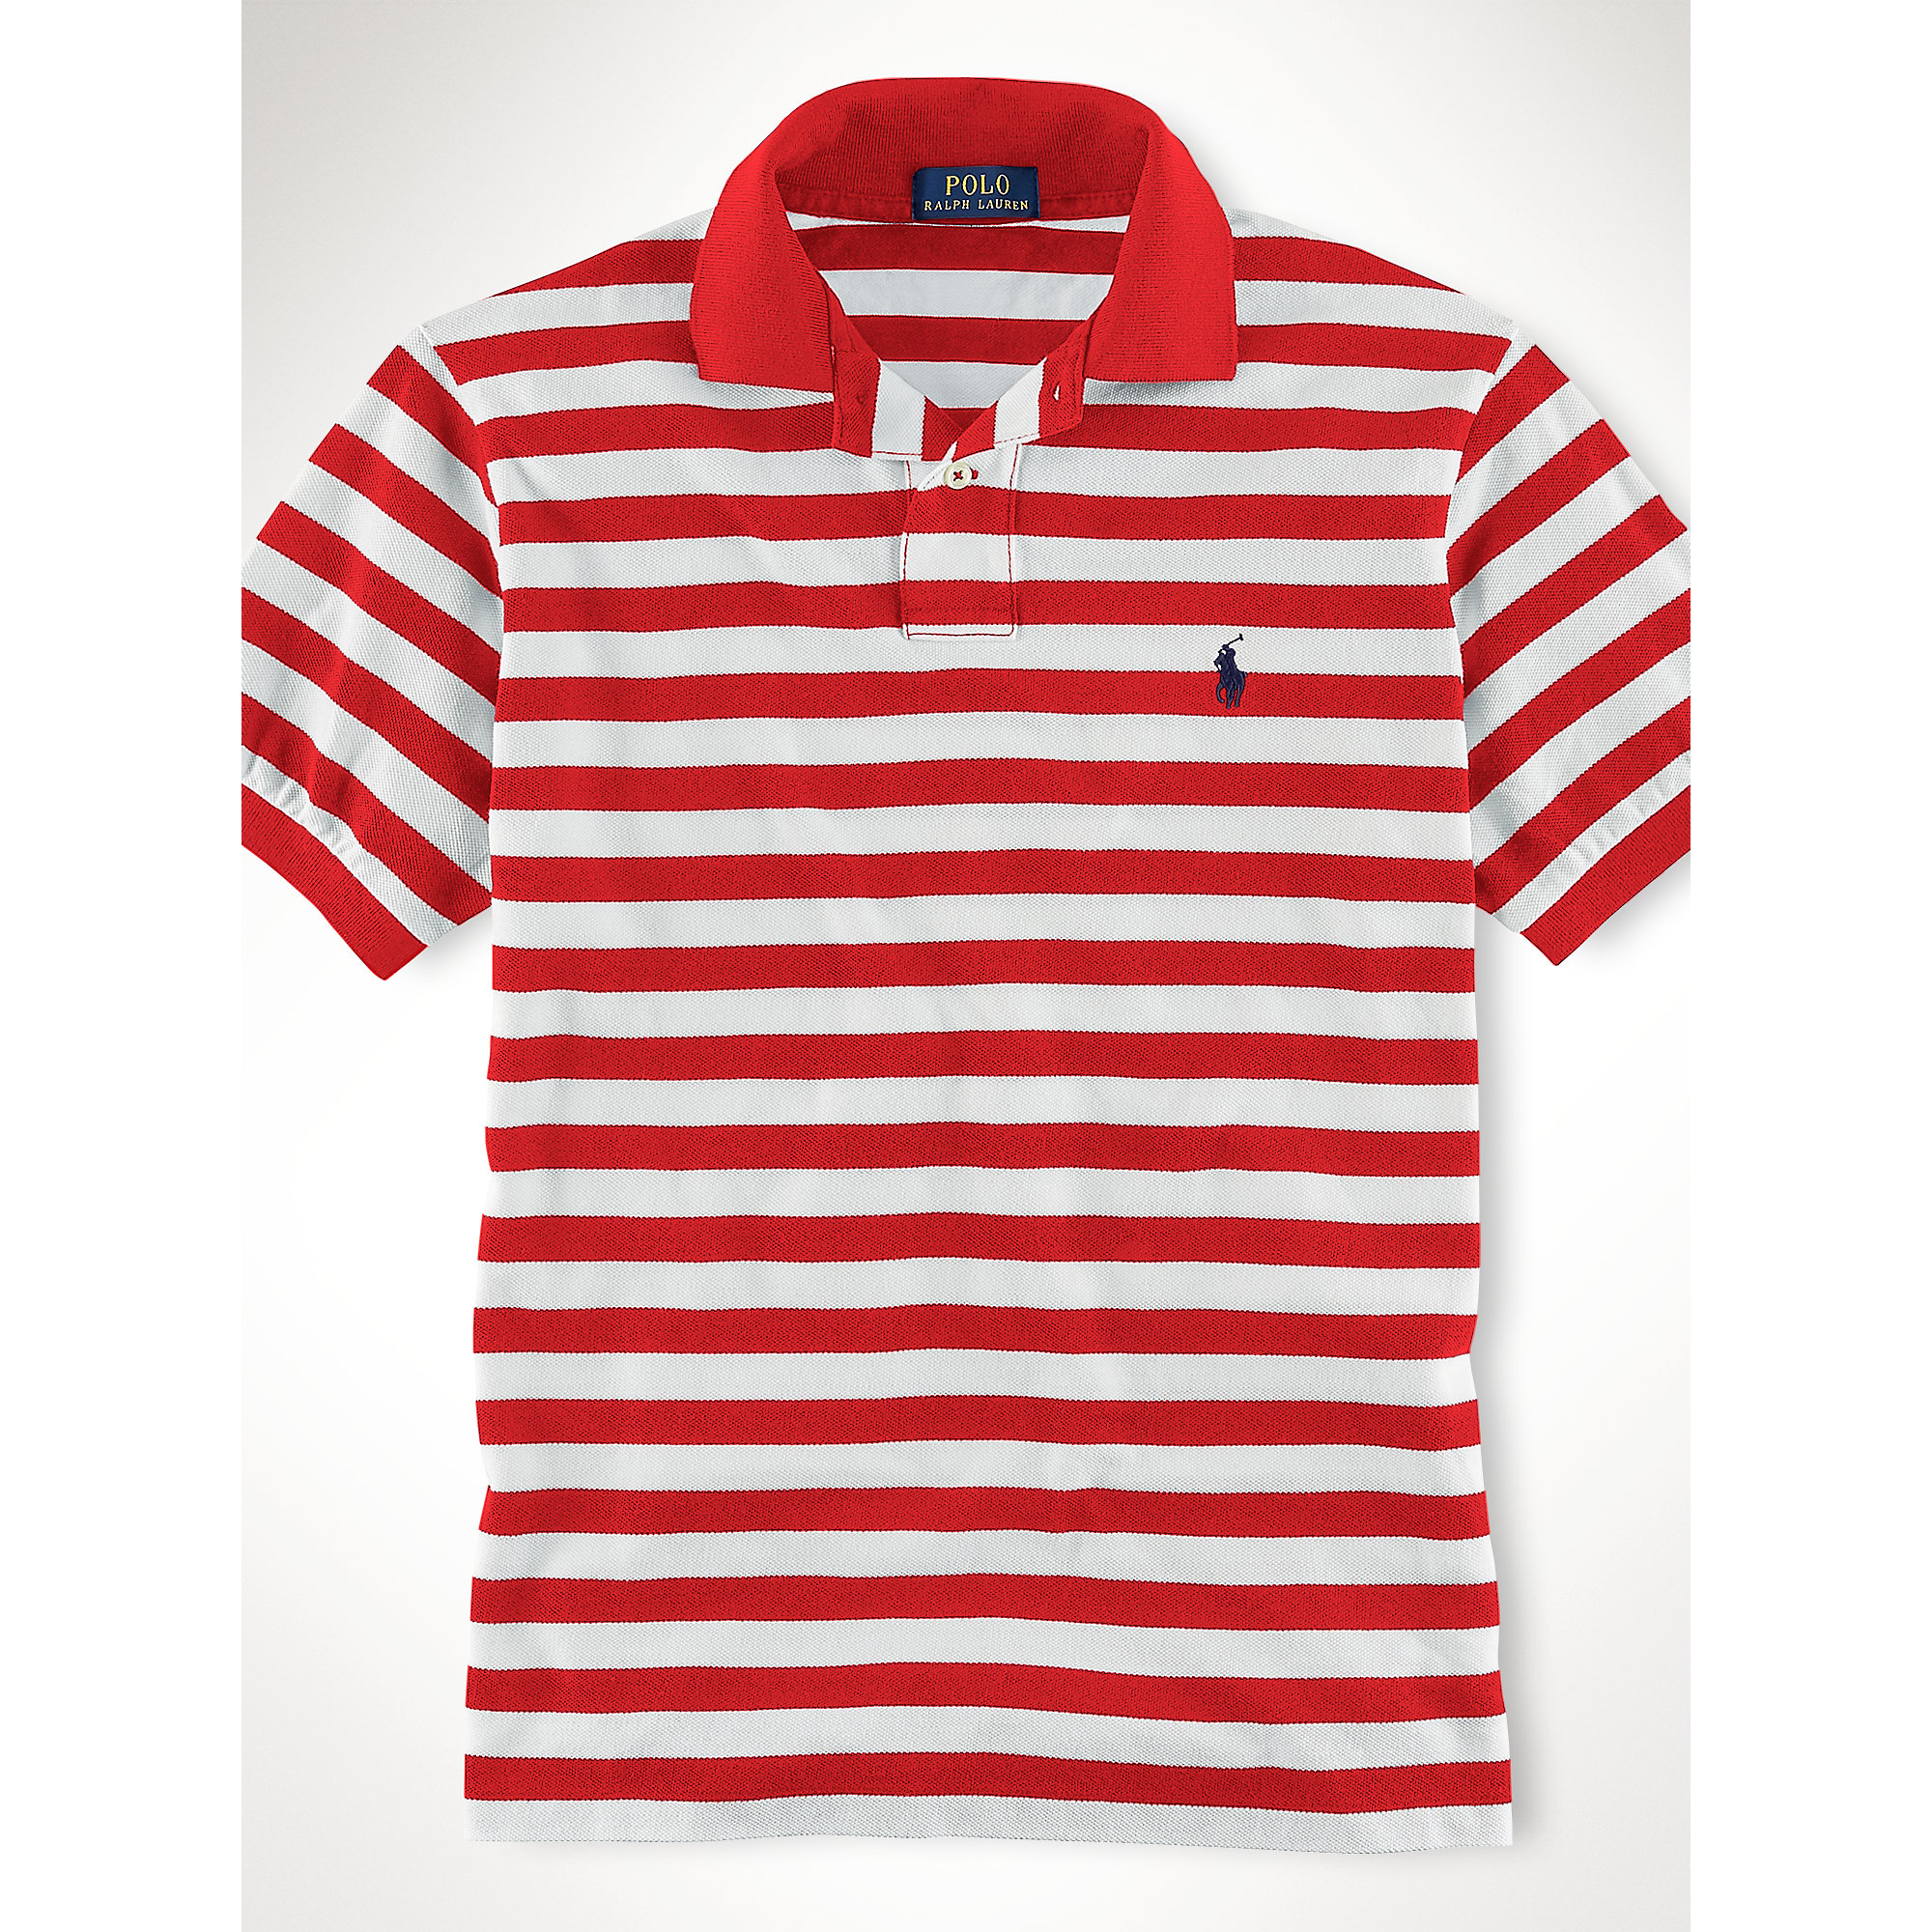 polo ralph lauren custom fit striped polo shirt in red for